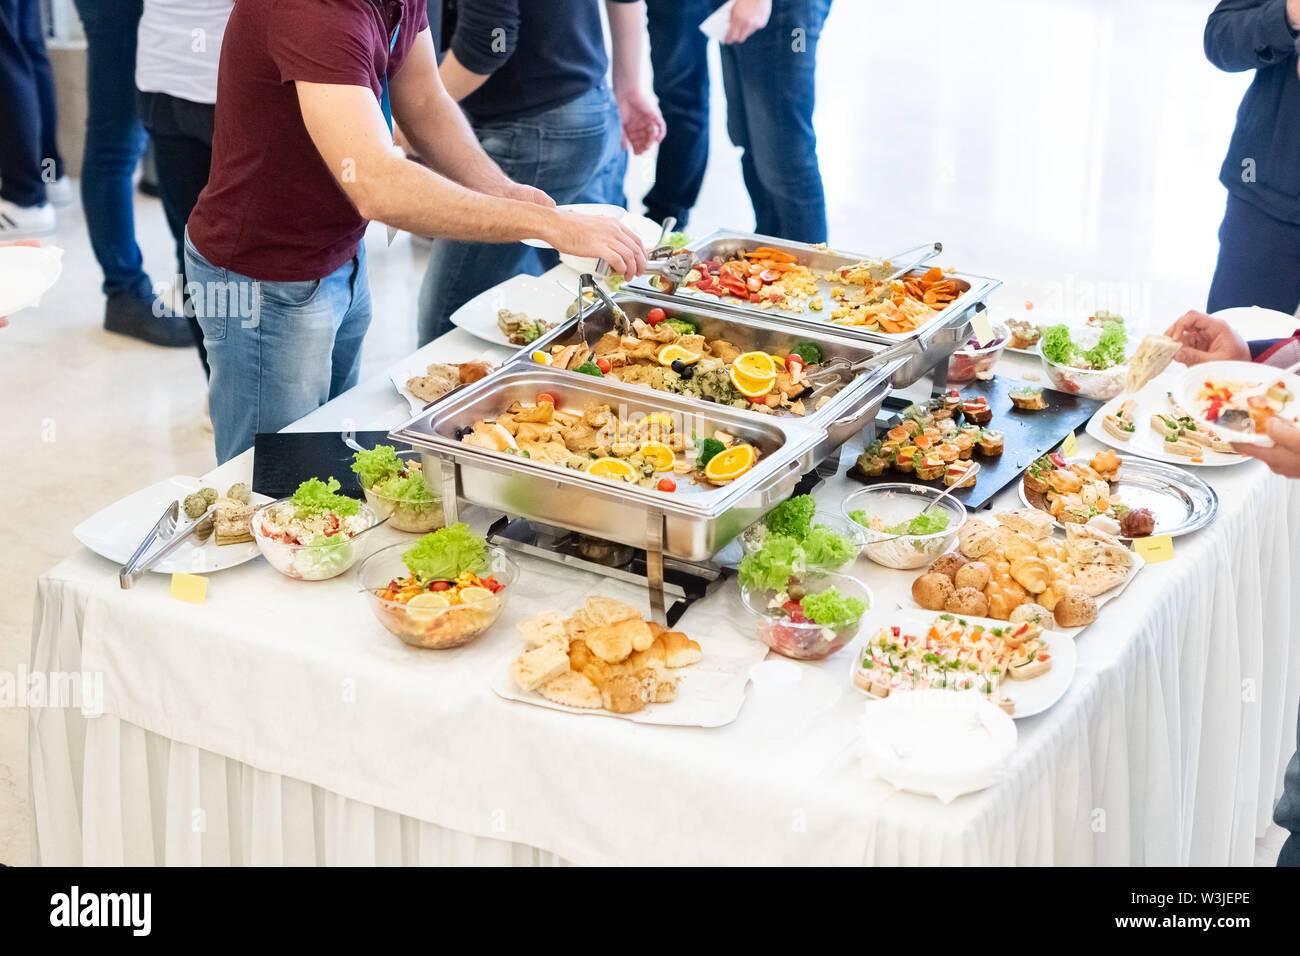 Close up of people serving themselves in buffet of restaurant. - Stock Image